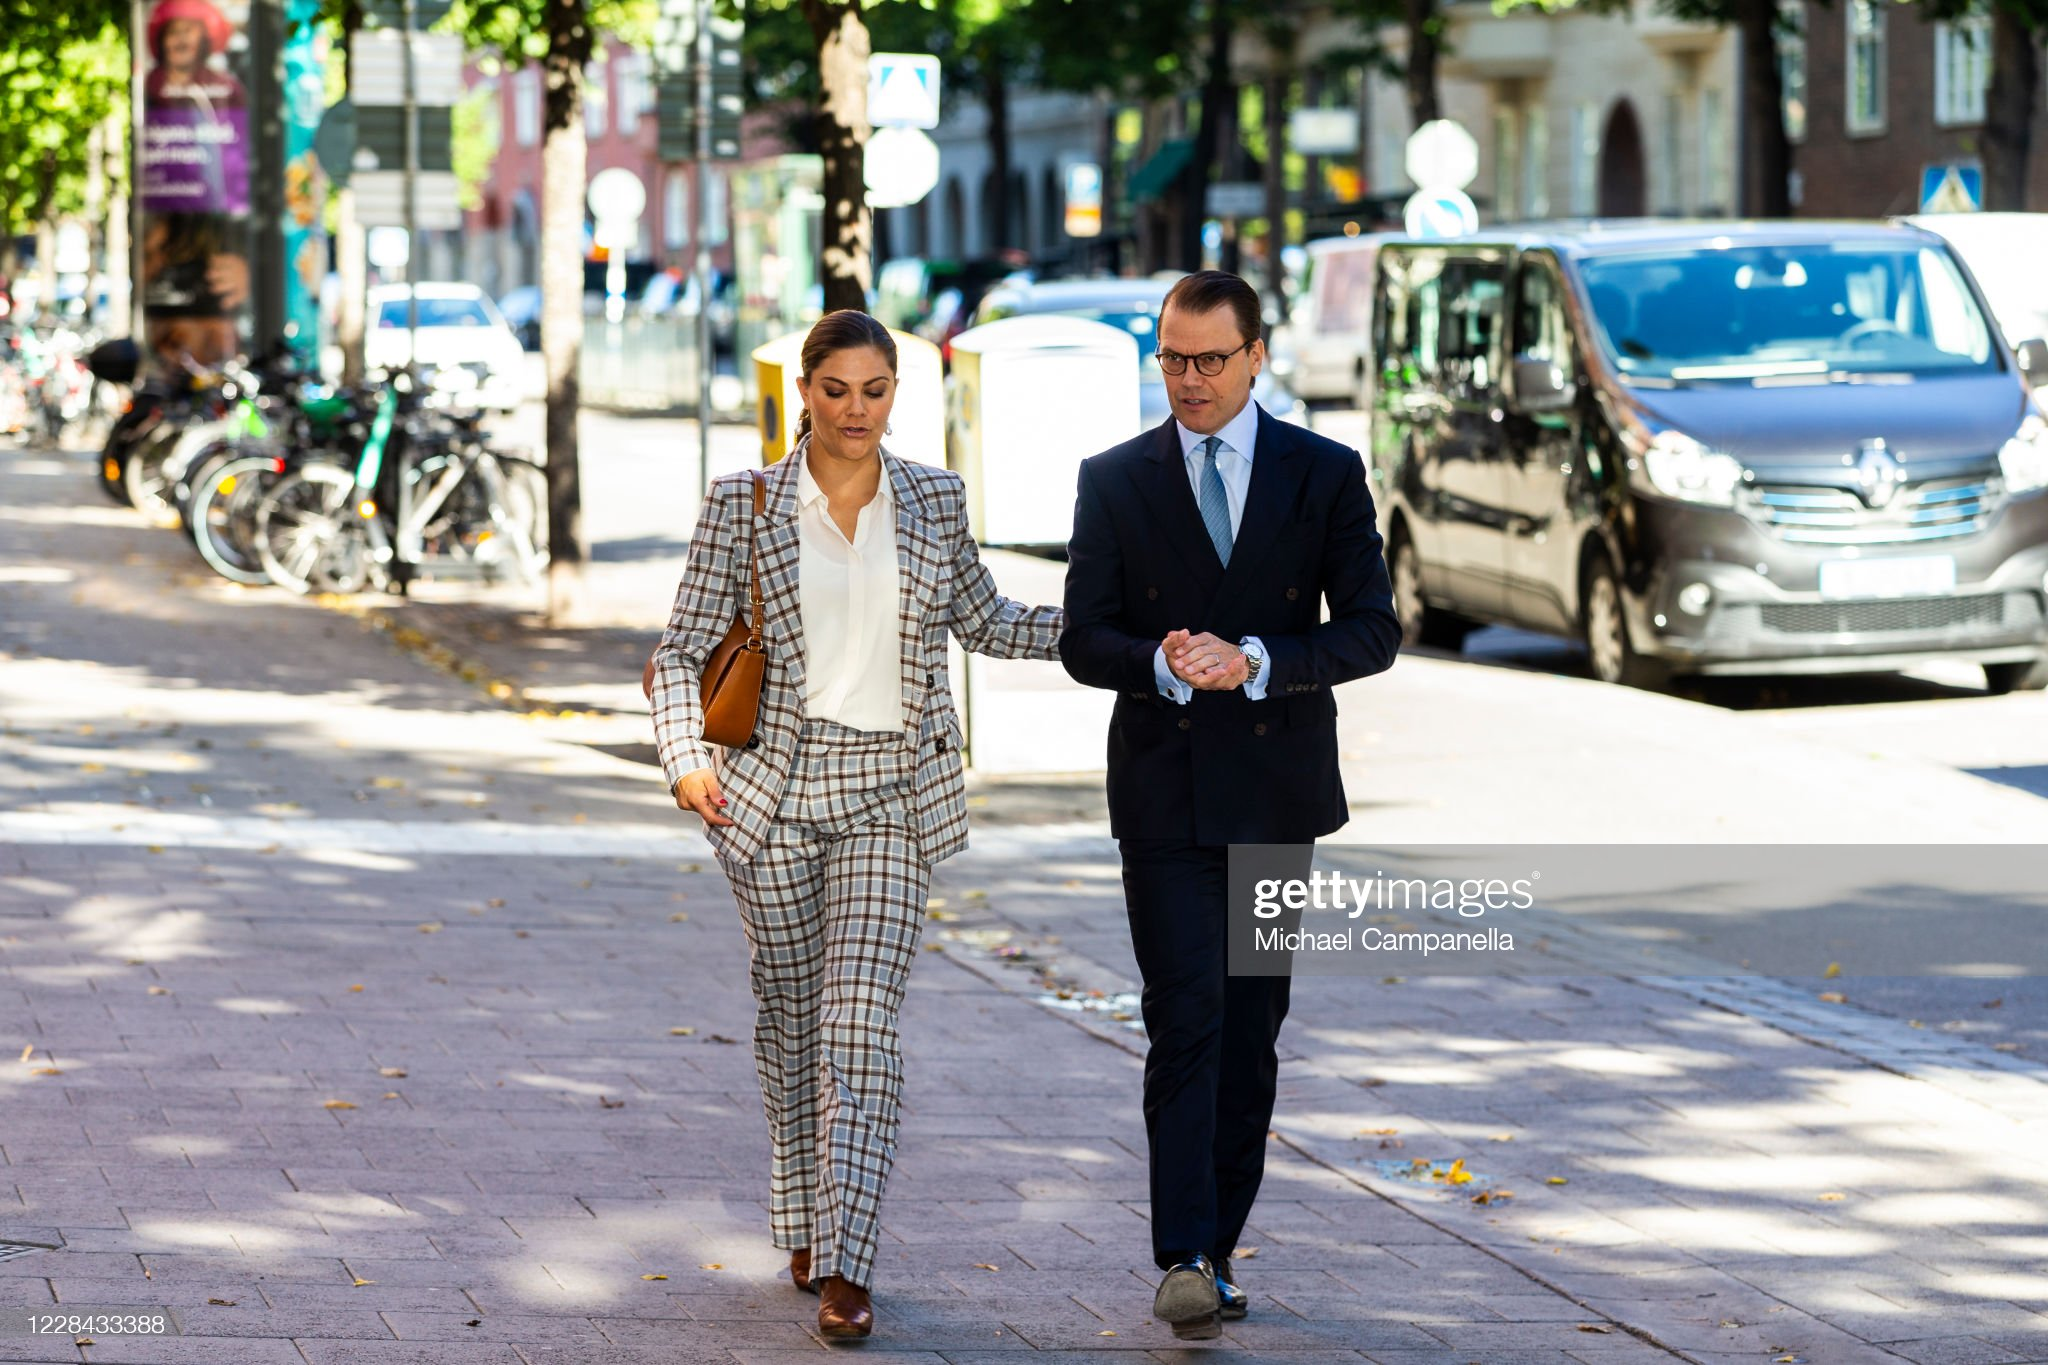 crown-princess-victoria-and-prince-daniel-of-sweden-visit-the-swedish-picture-id1228433388